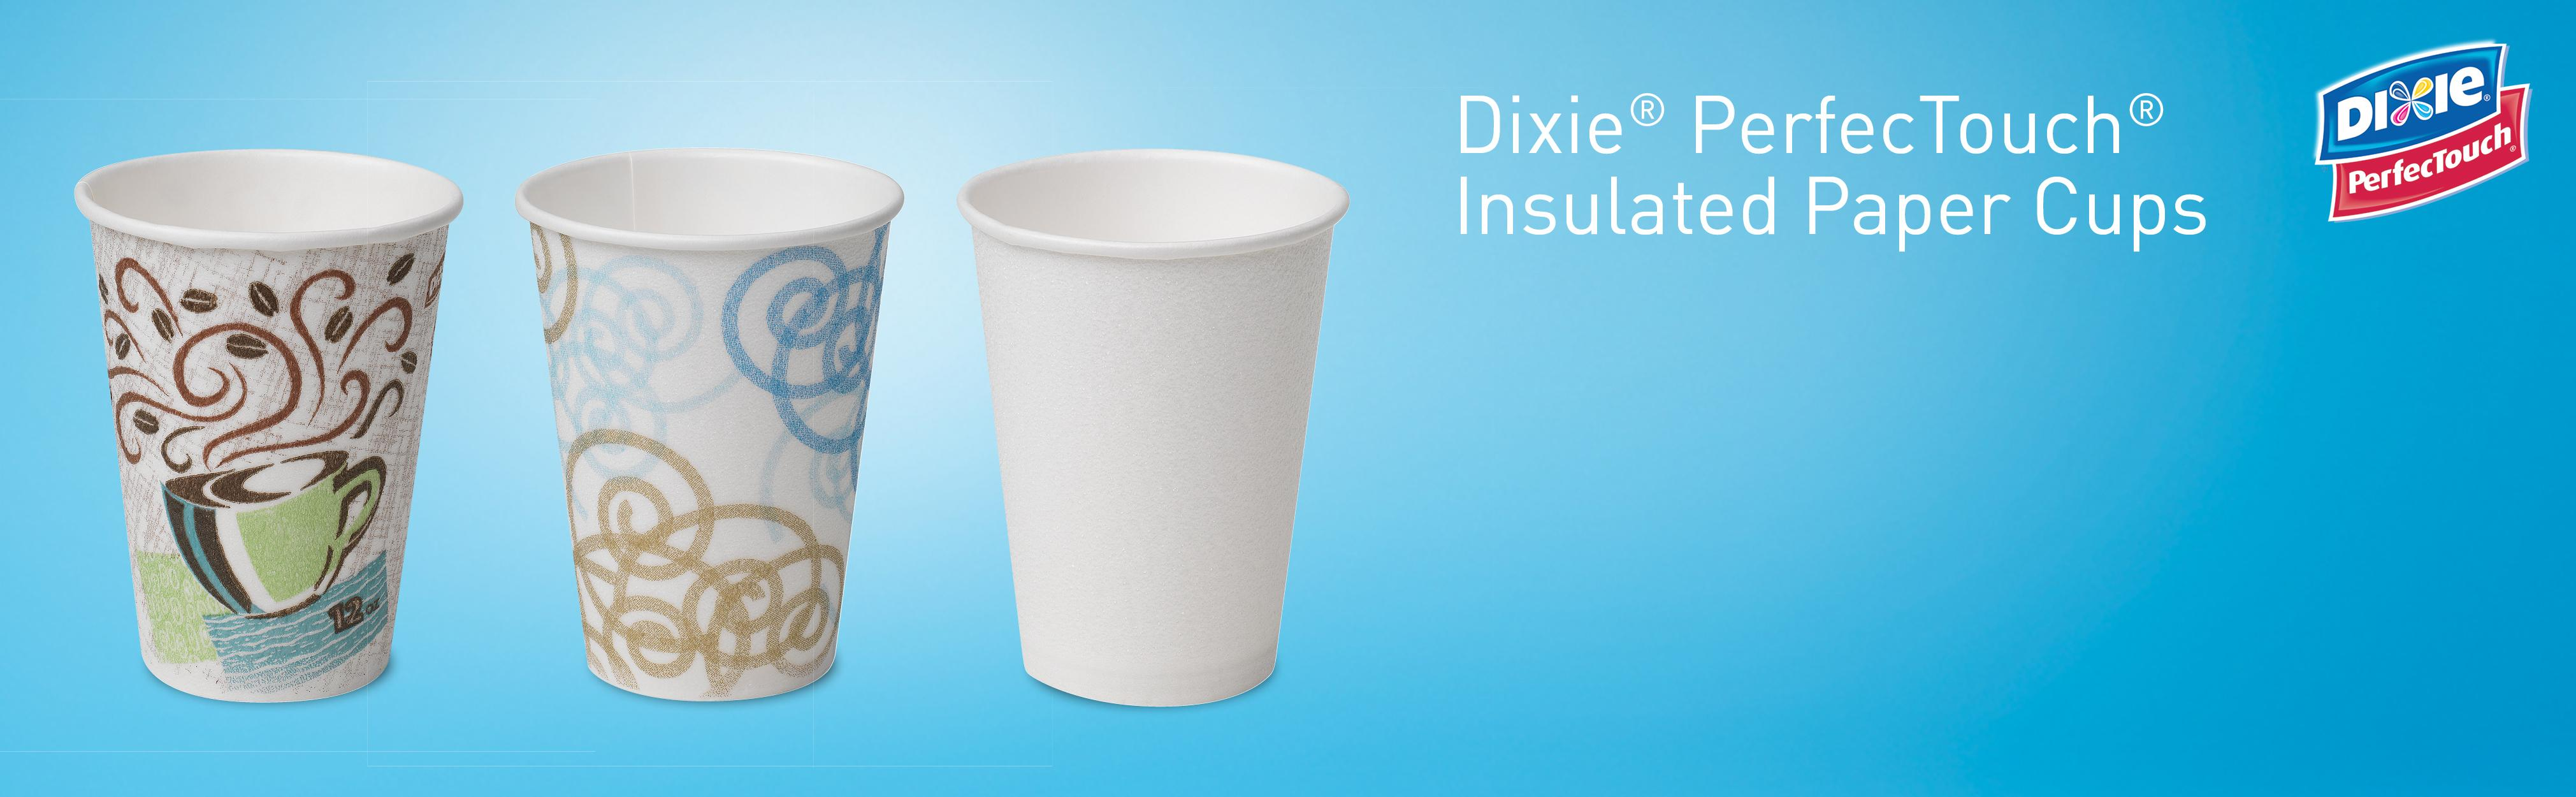 amazon com dixie perfectouch 5342dx wisesize insulated paper cup